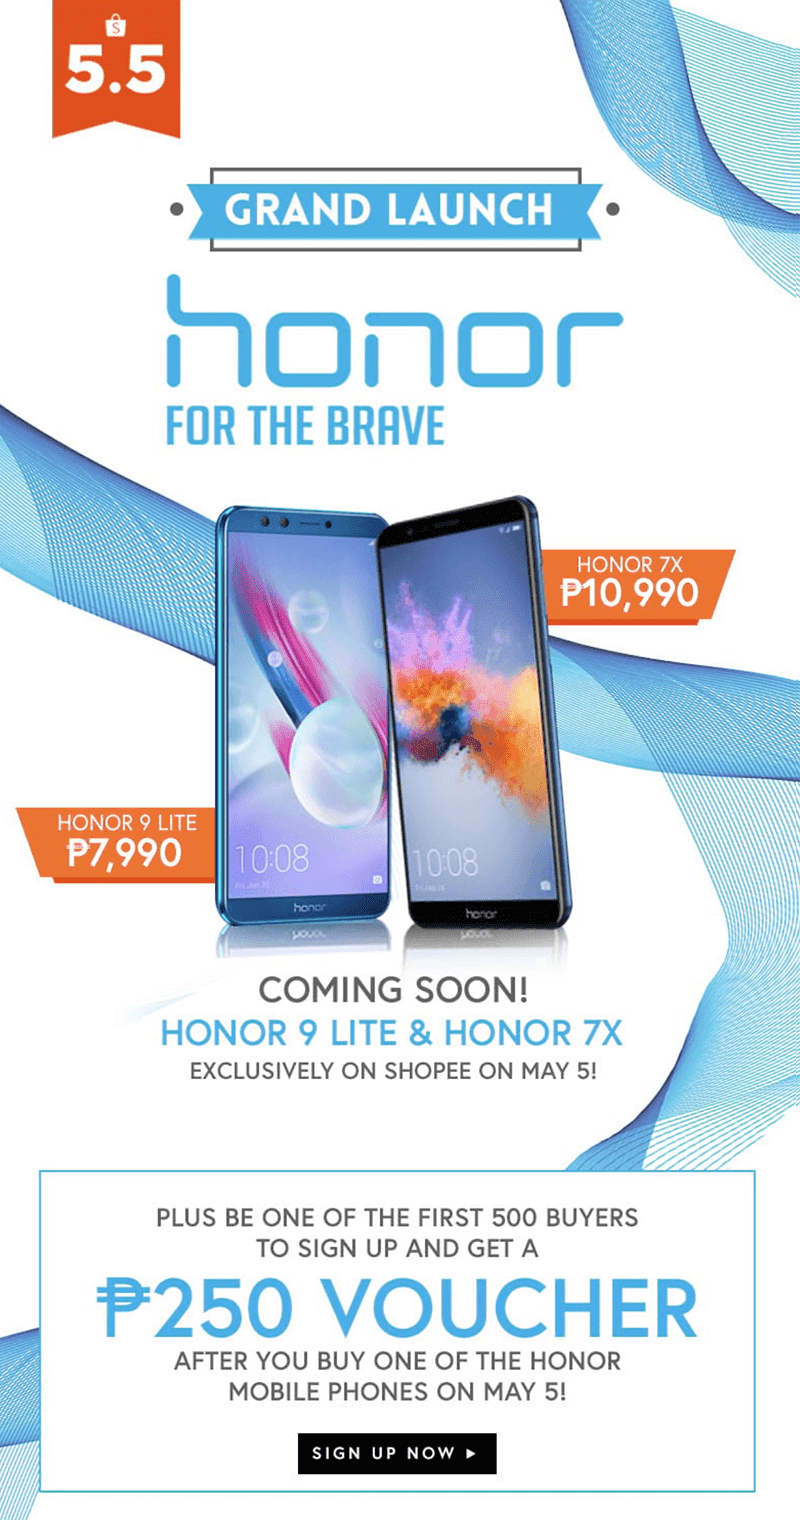 Shopee x Honor promo